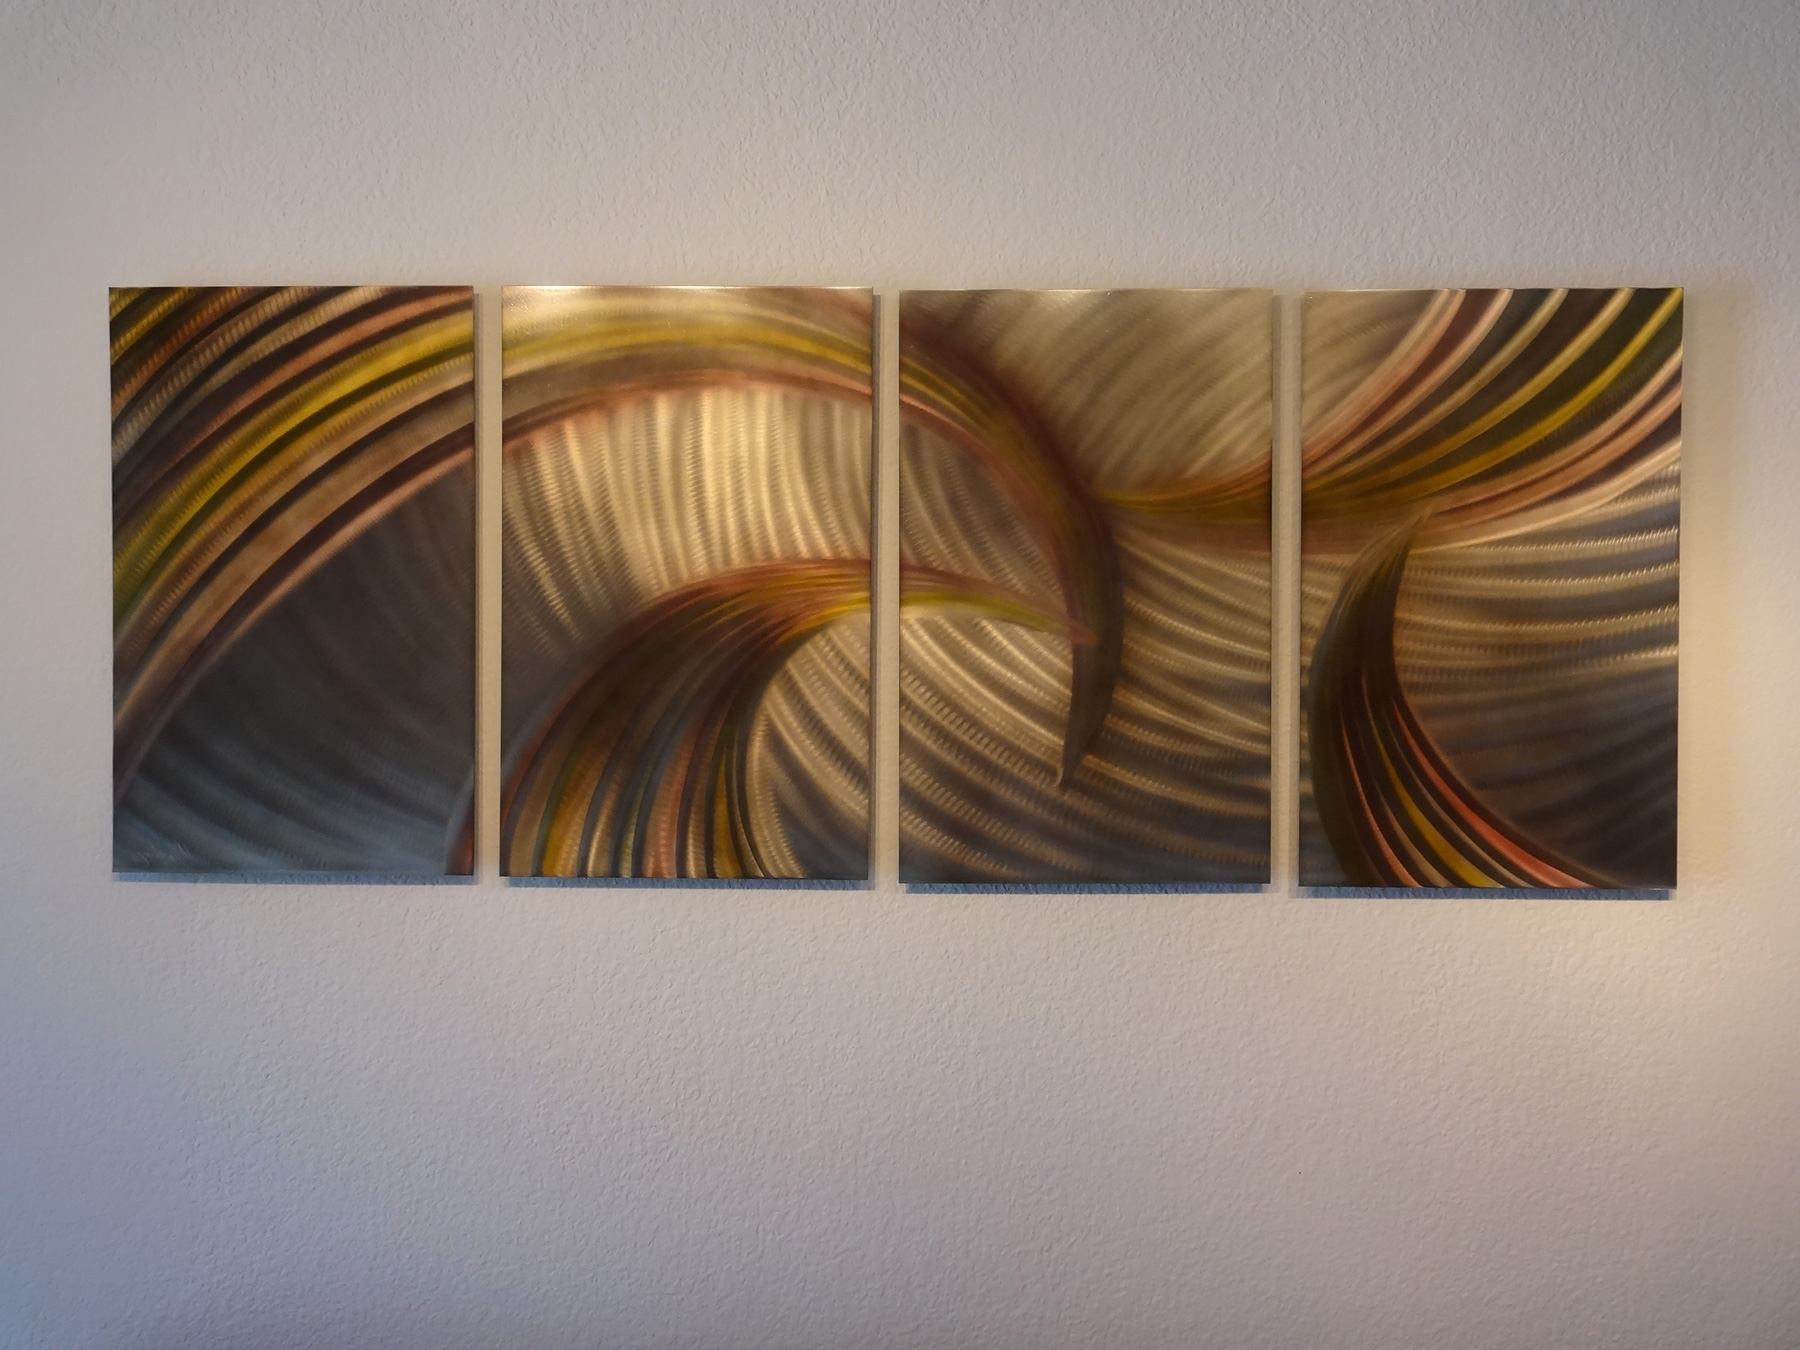 Modern Abstract Wall Art Intended For Most Current Tempest Bronze – Abstract Metal Wall Art Contemporary Modern Decor (View 12 of 15)